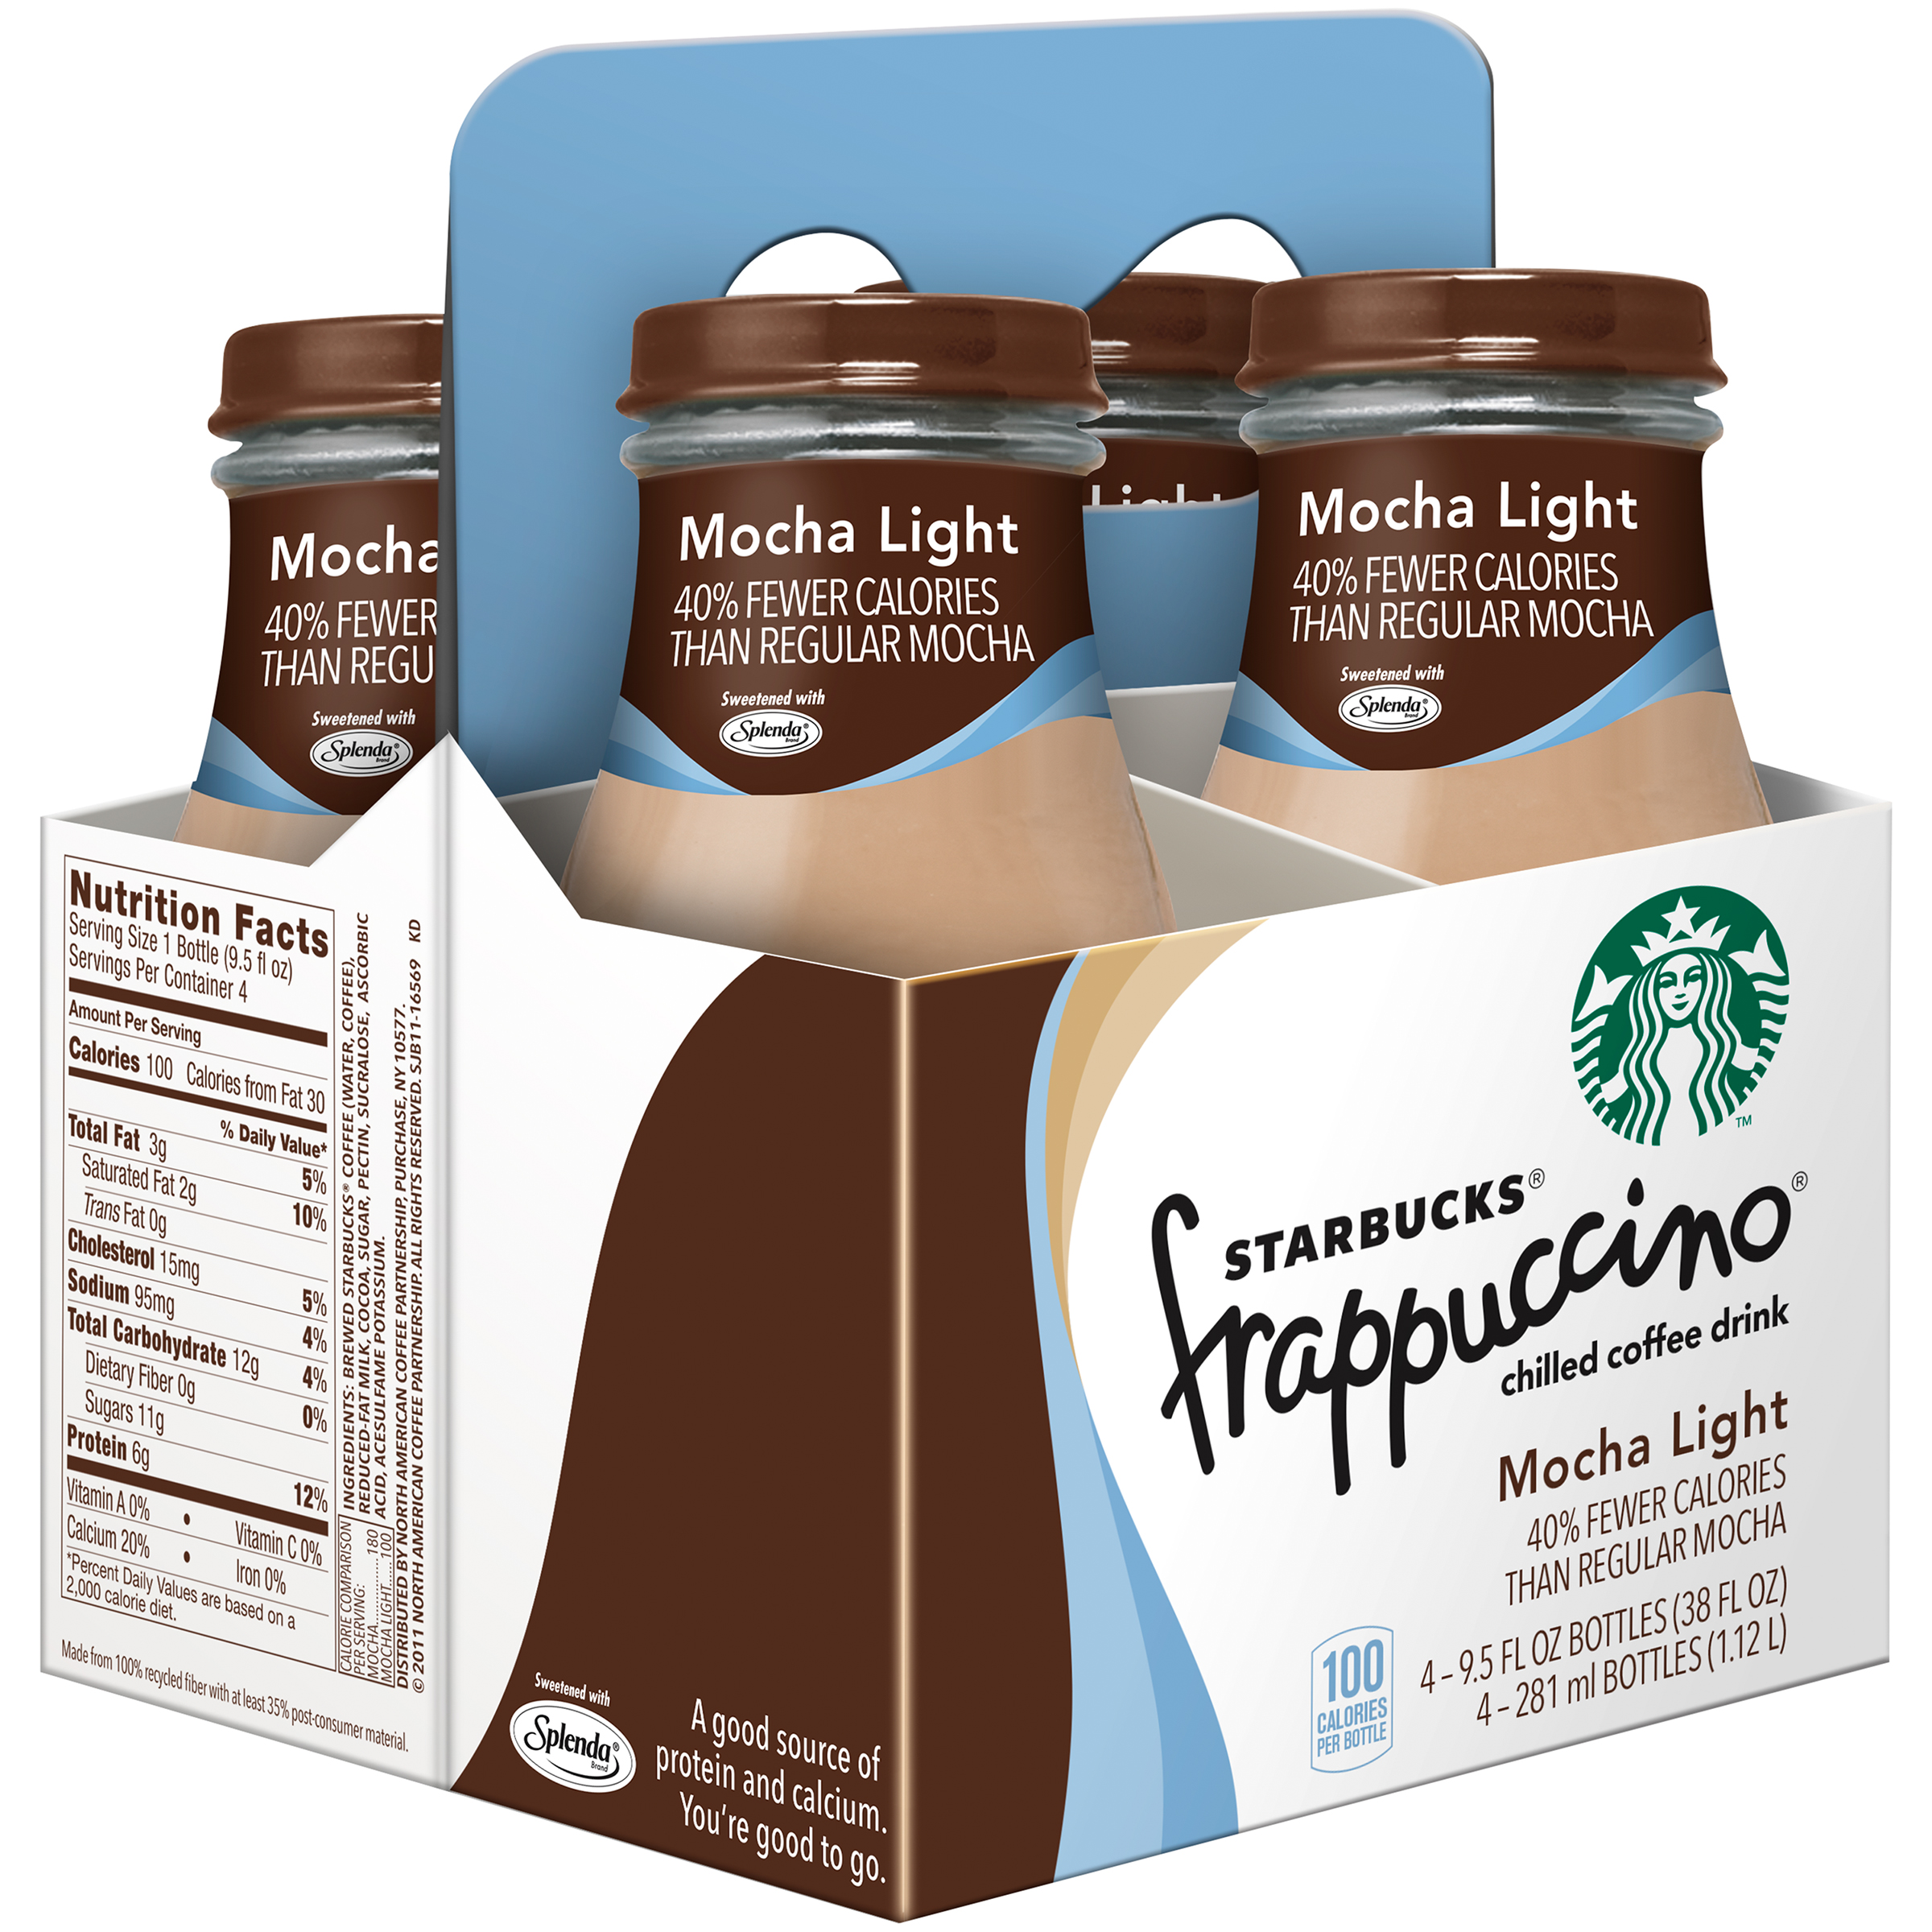 Starbucks Frappuccino Chilled Coffee Drink, Mocha Light, 9.5 Fl Oz, 4 Count